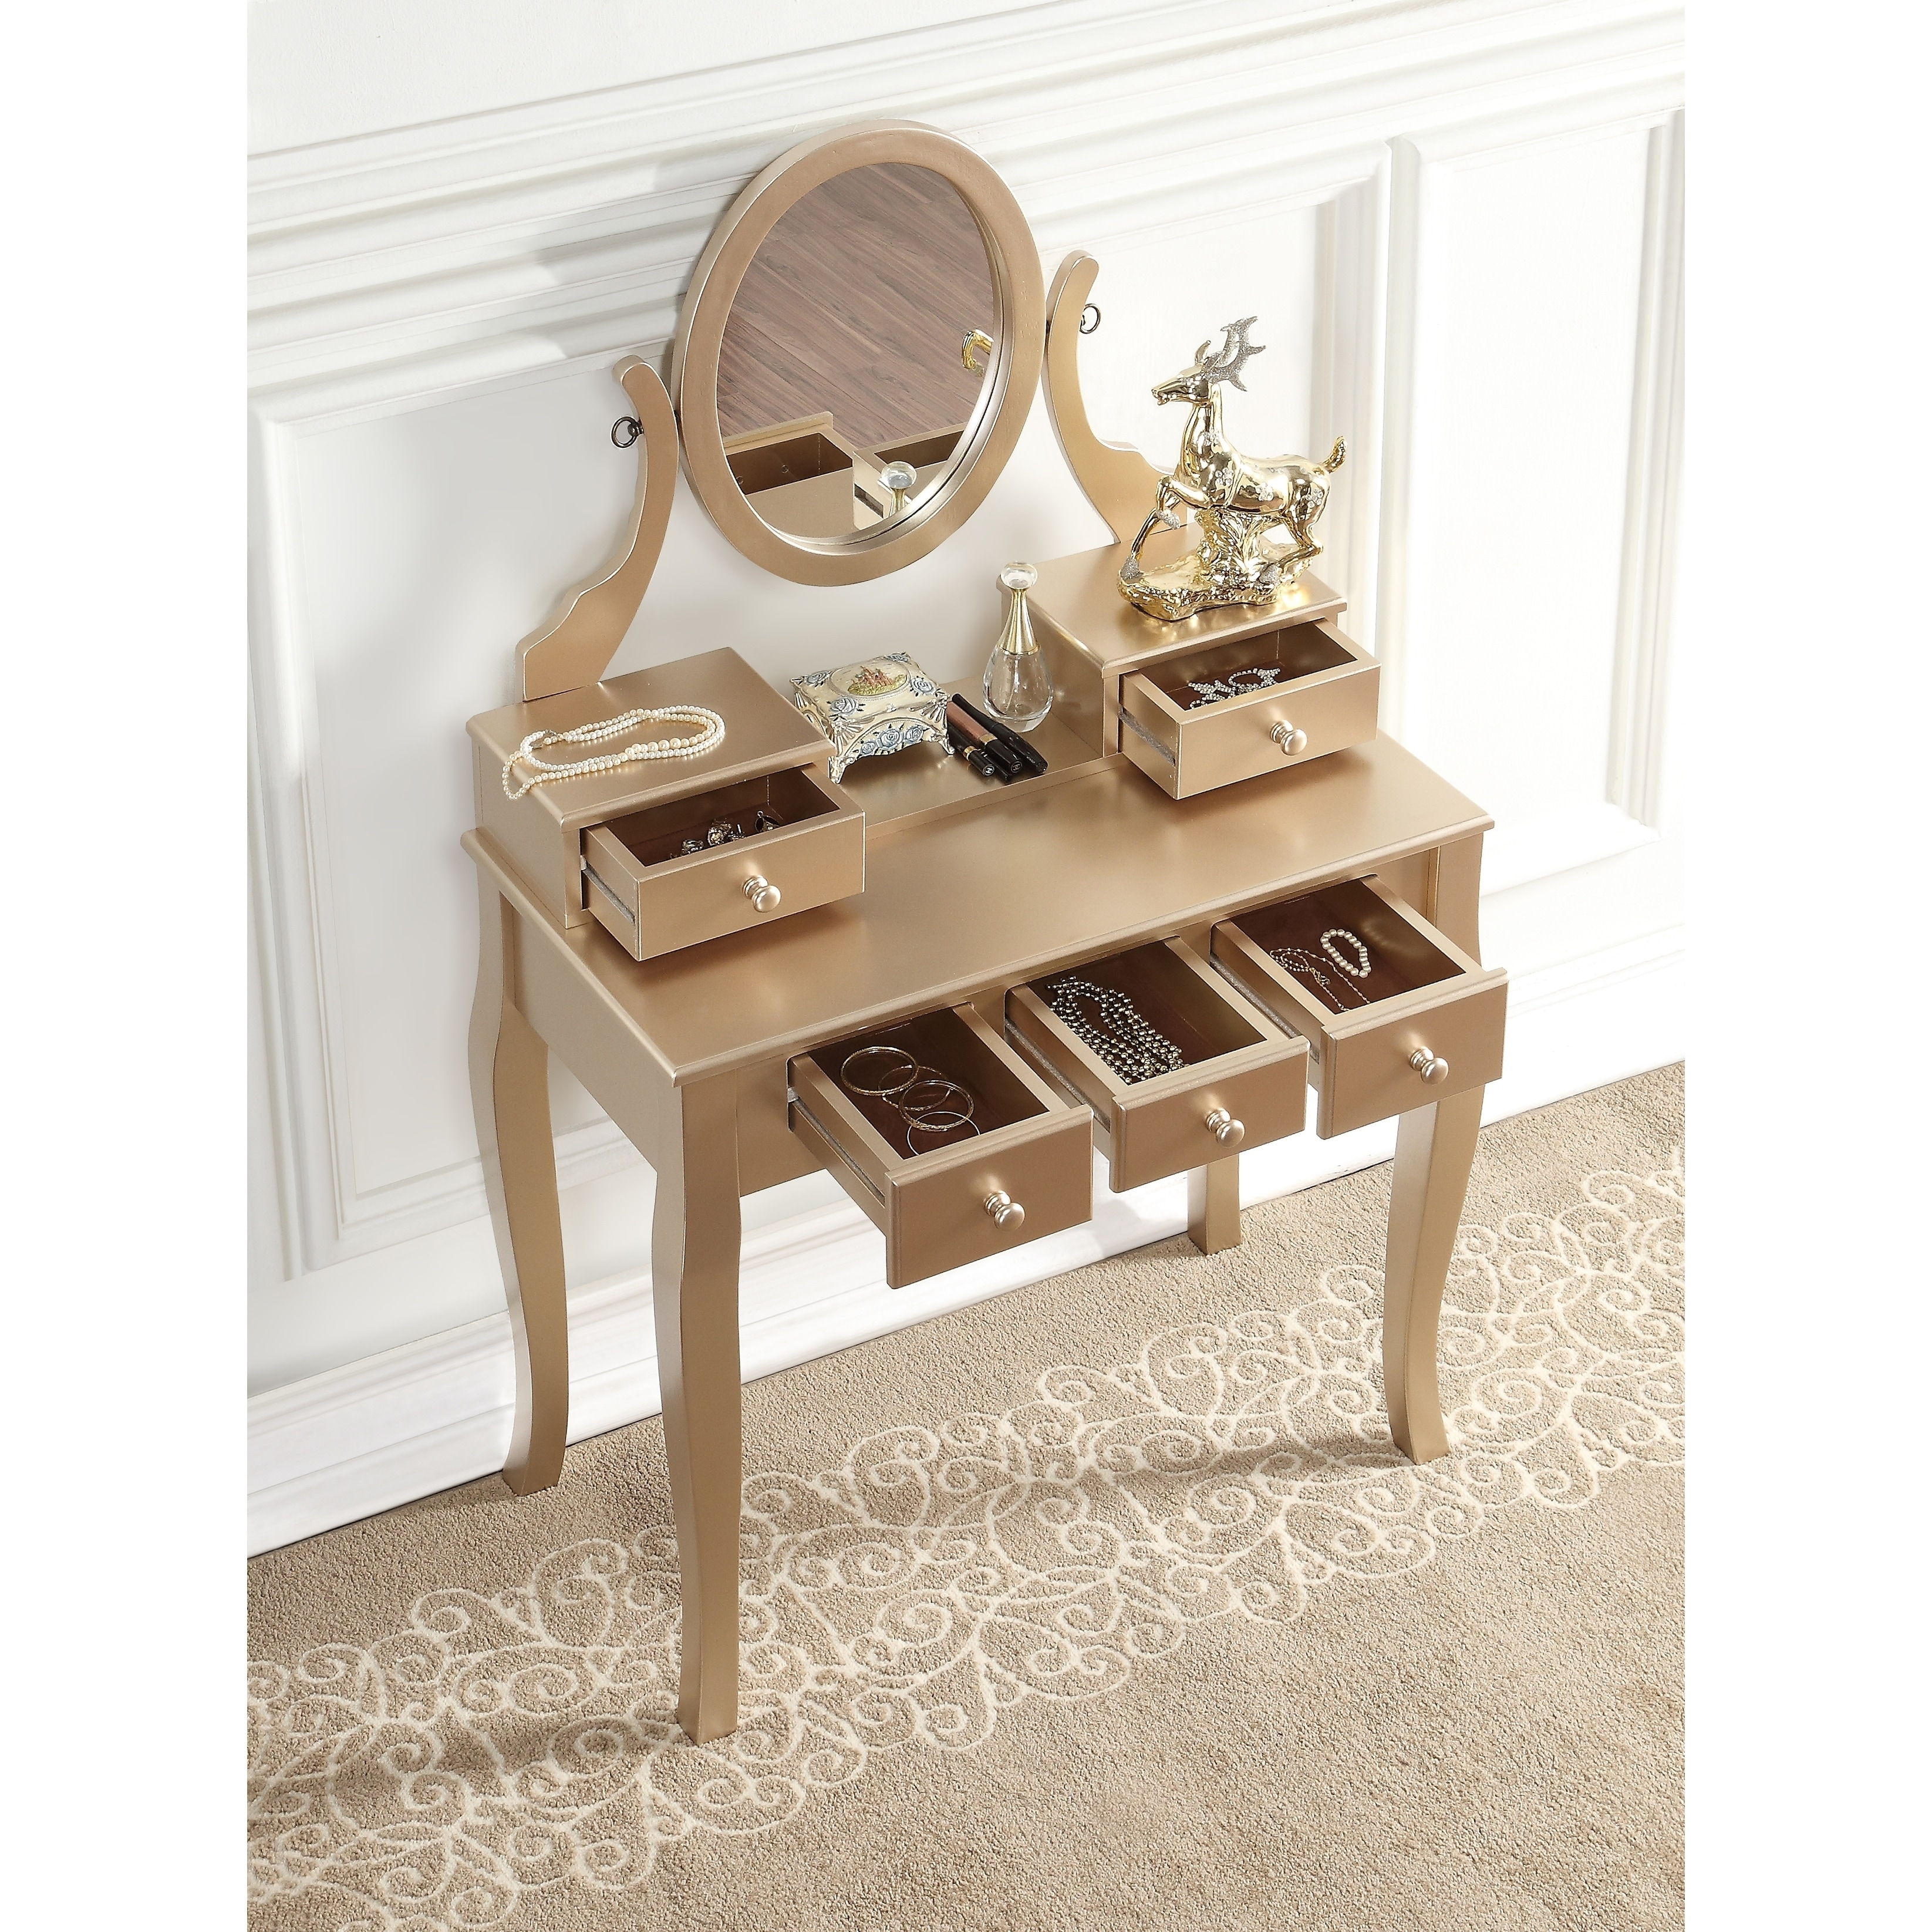 Maison-Rouge-Alice-Wood-Makeup-Vanity-Table-and-  sc 1 st  eBay & Maison Rouge Alice Wood Makeup Vanity Table and Stool Set | eBay